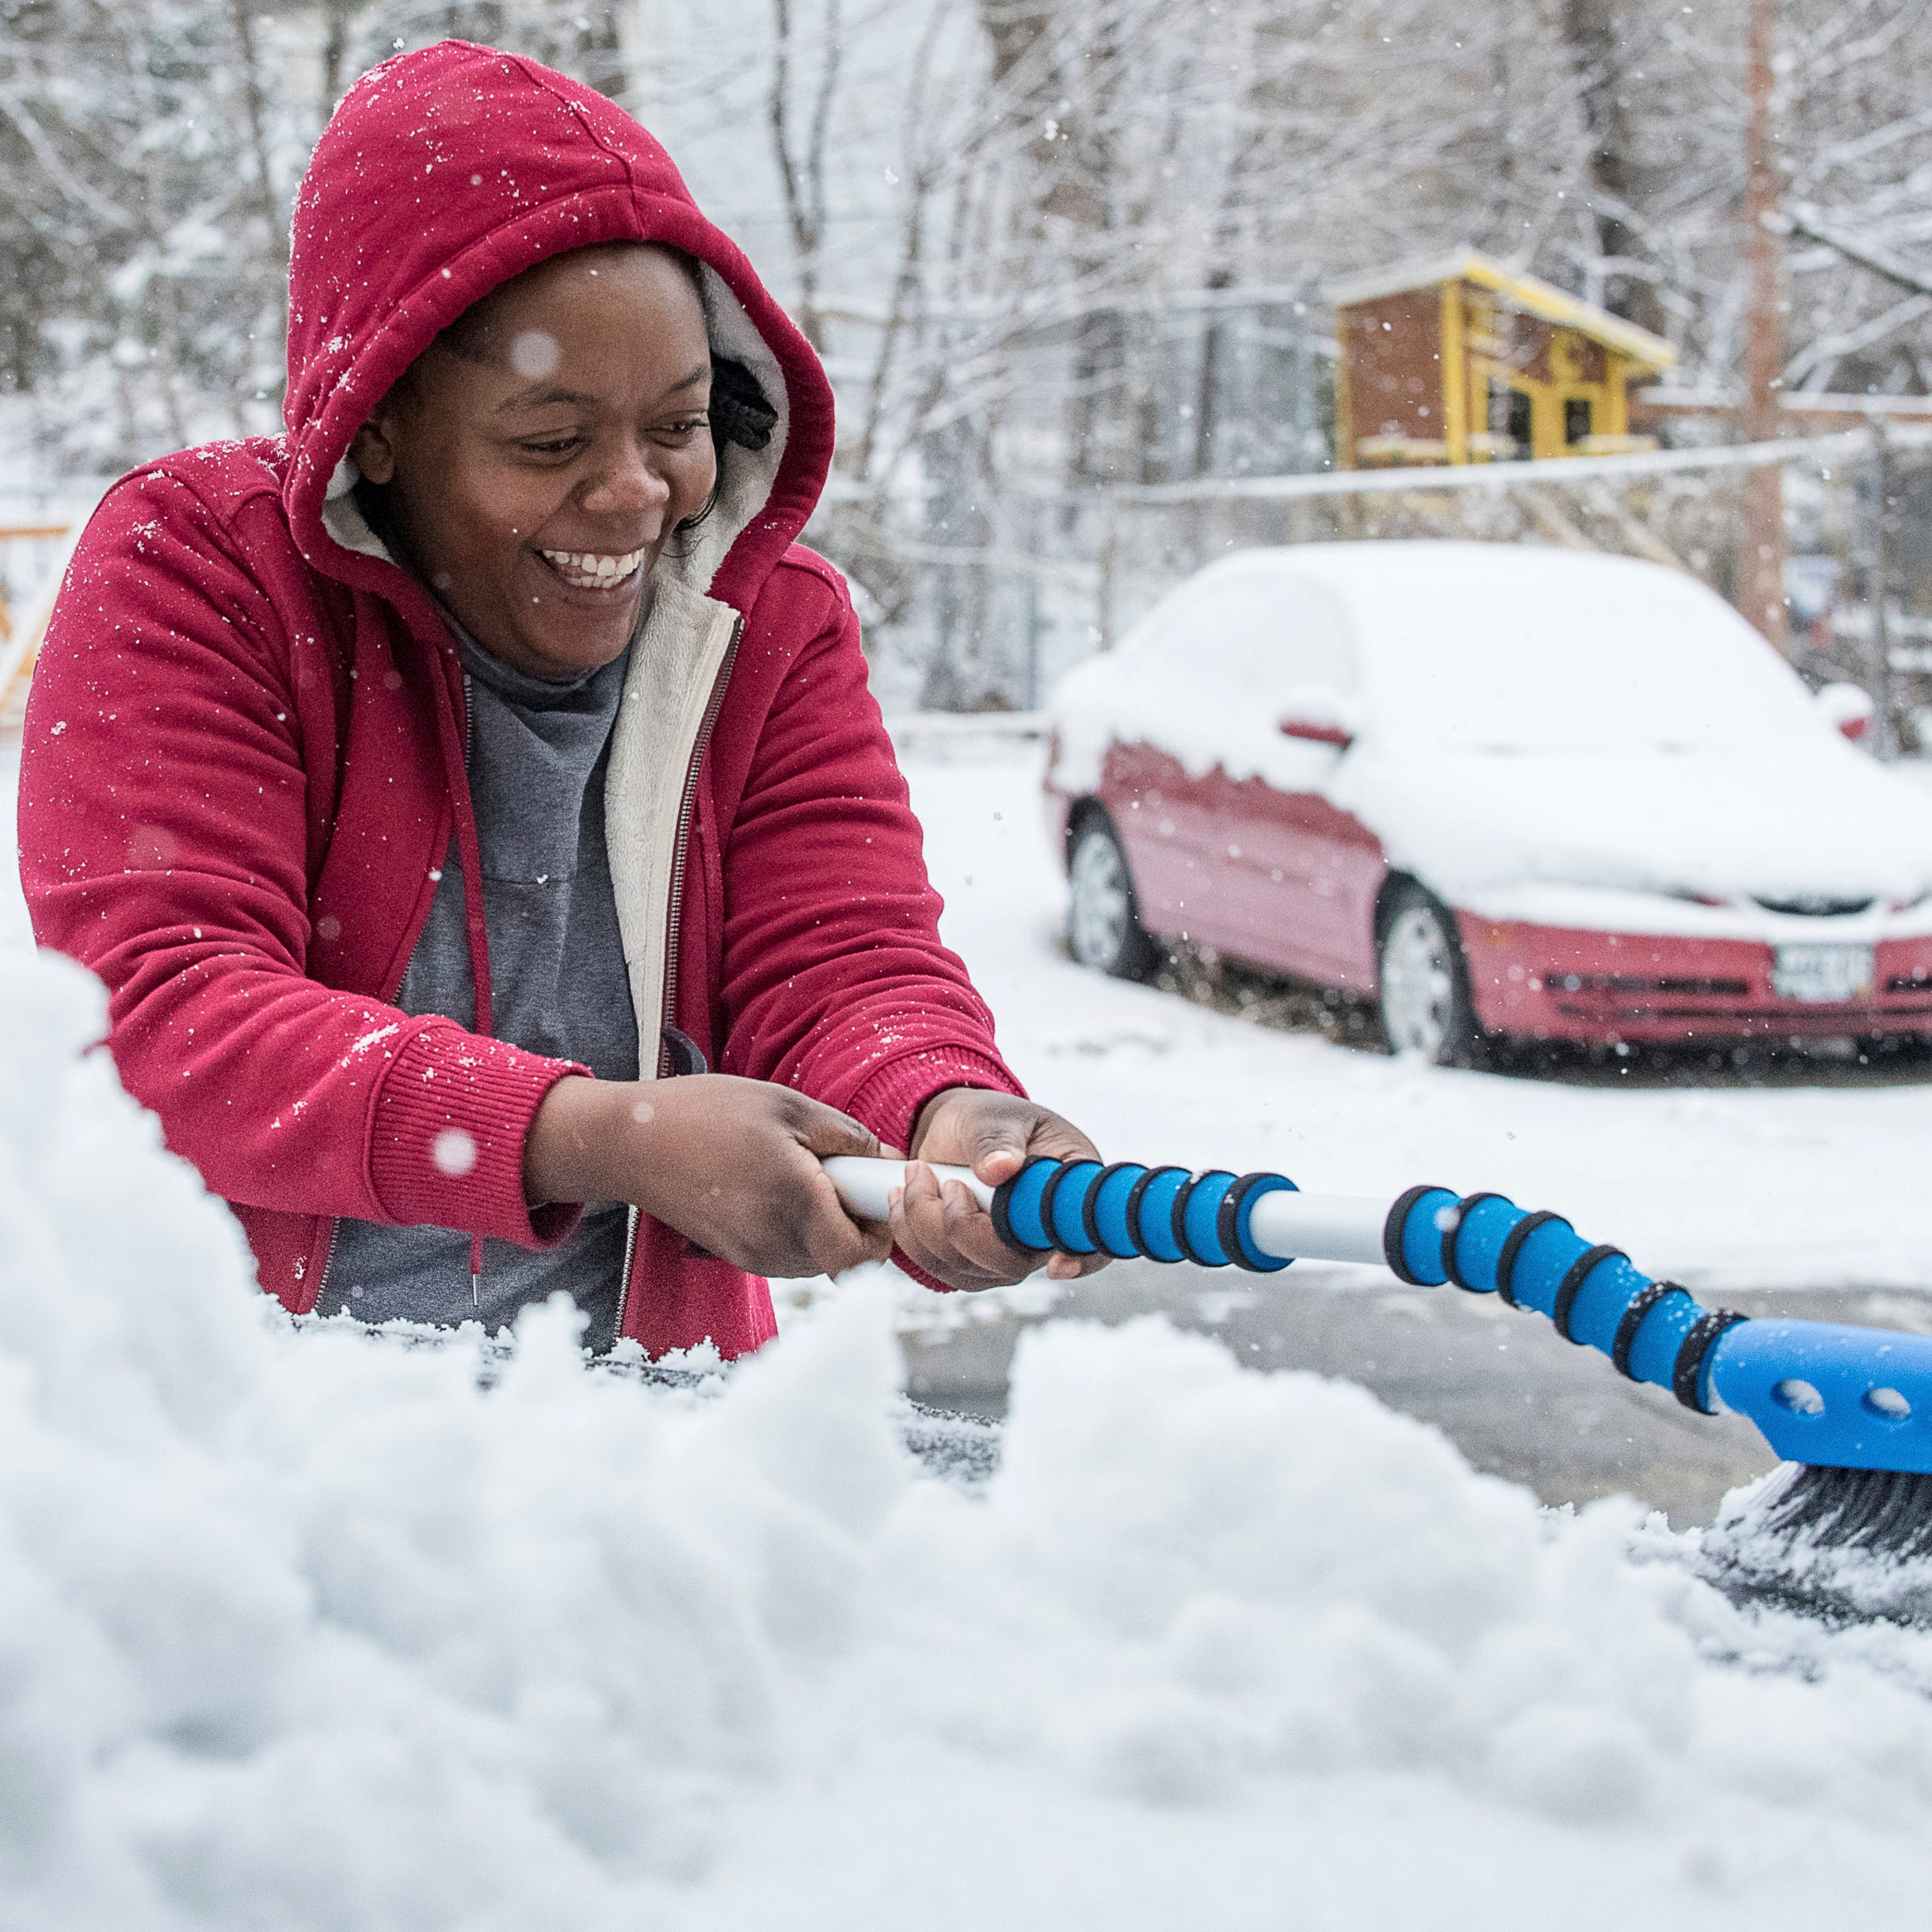 'This may not be your typical blizzard': 200M of us face weather mess of snow, heavy rain, wind and flooding